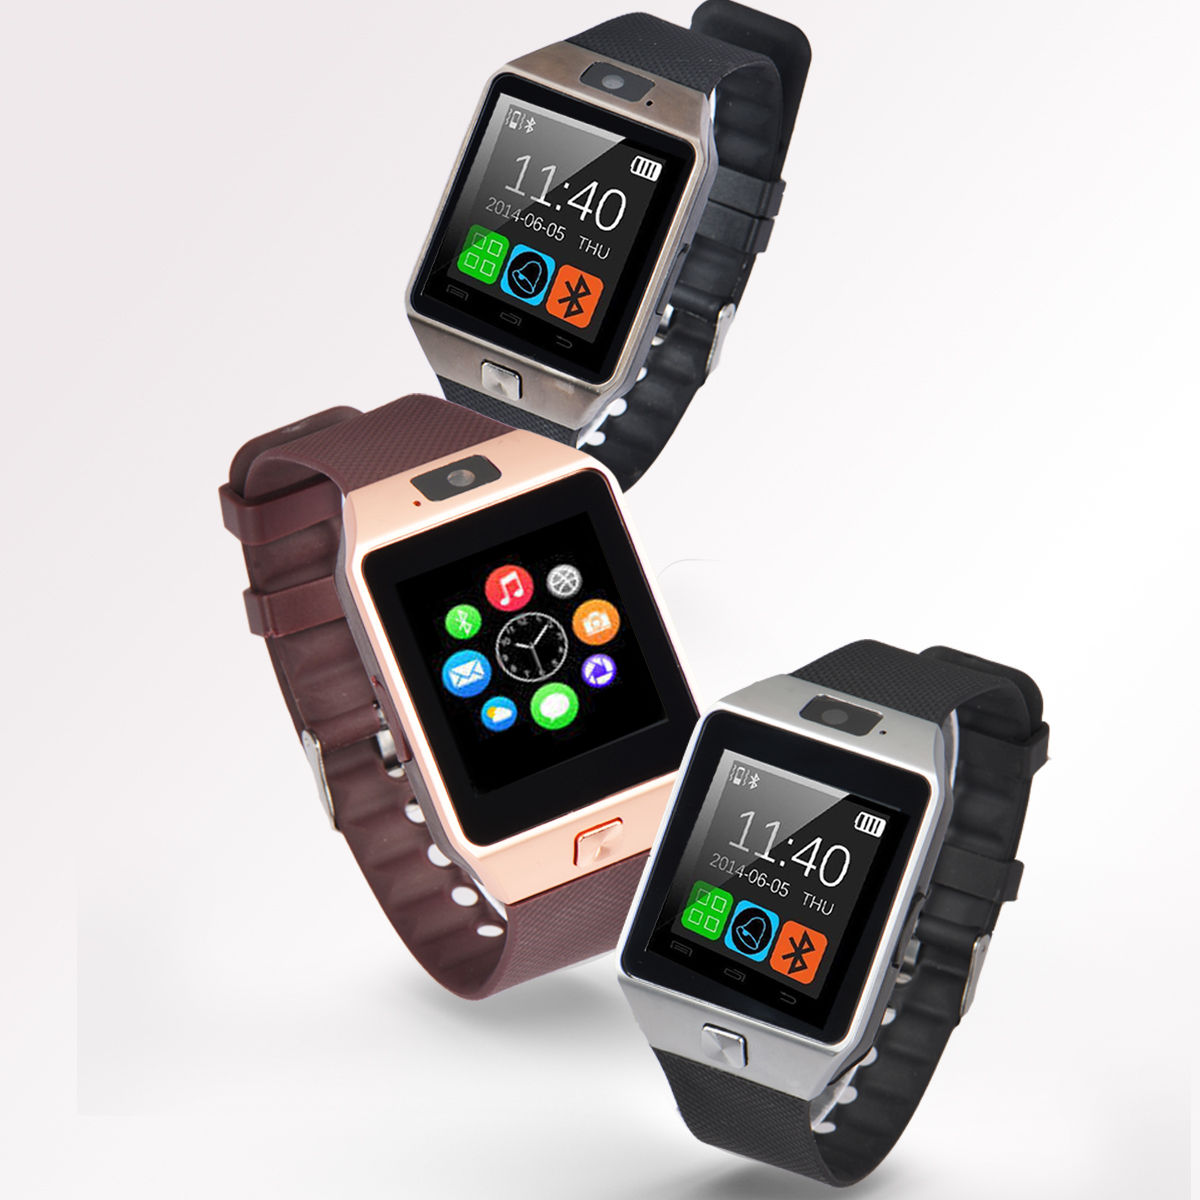 8b895d4fc187 Buy Smart Watch Mobile Online at Best Price in India on Naaptol.com